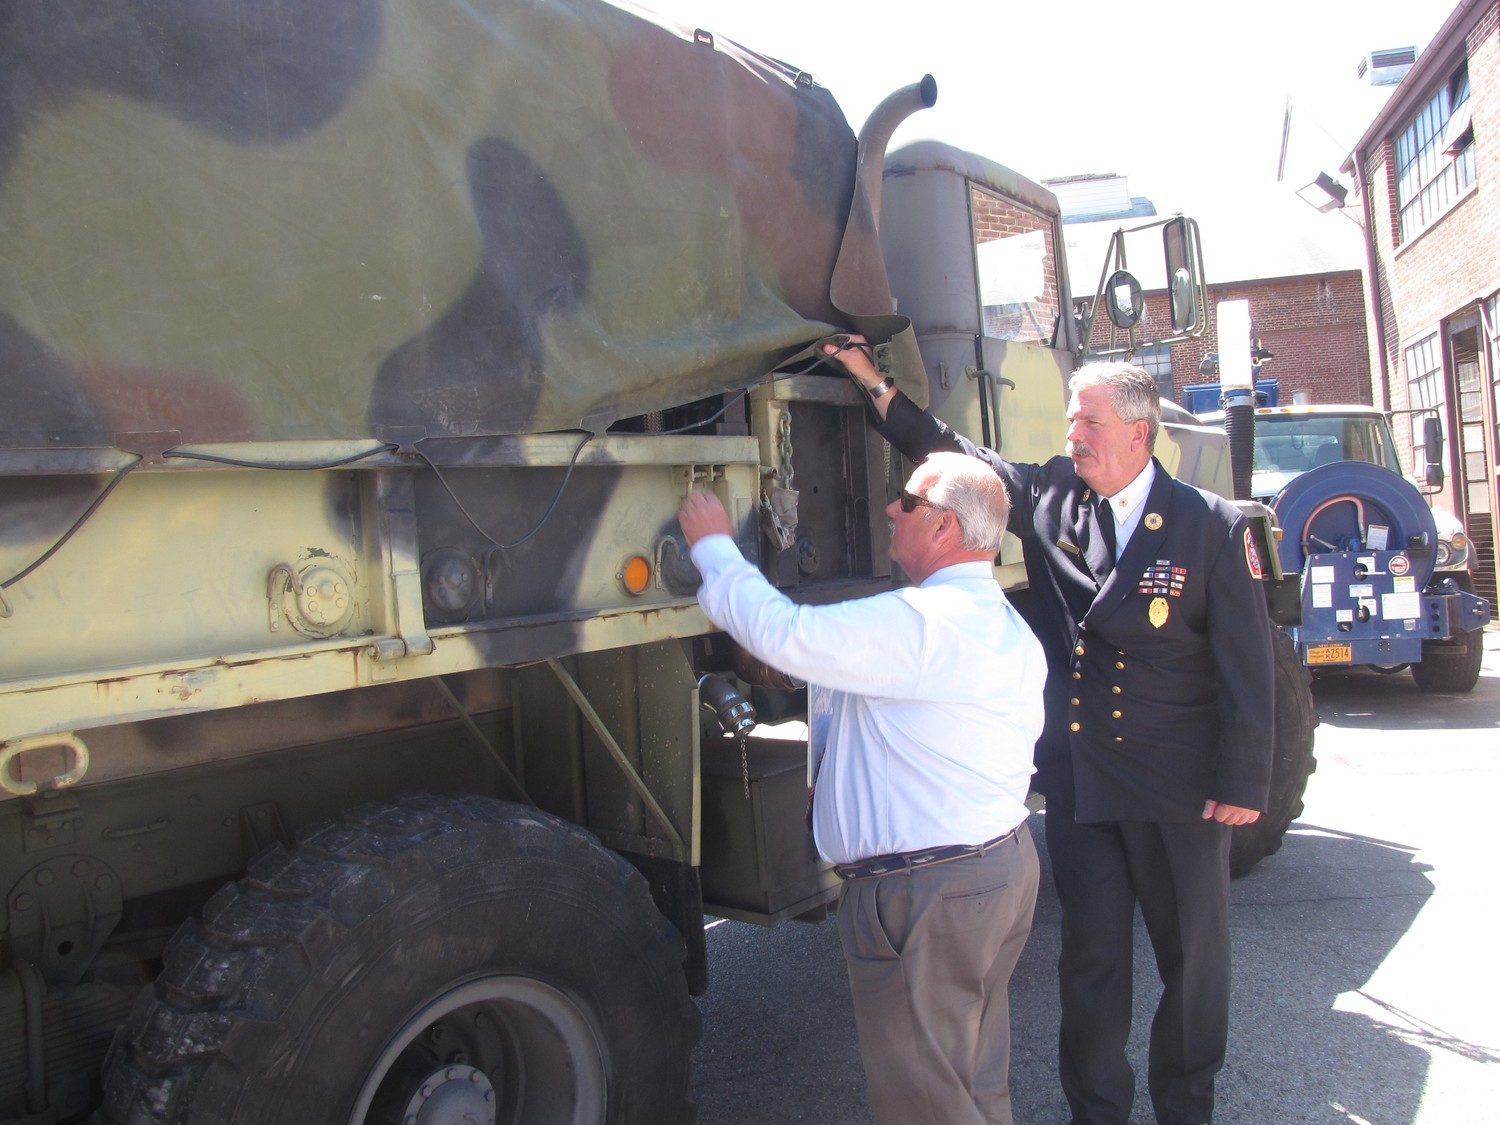 Kennedy and Ray Maguire, executive director of the Freeport Fire Department, inspected one of the village's emergency trucks.